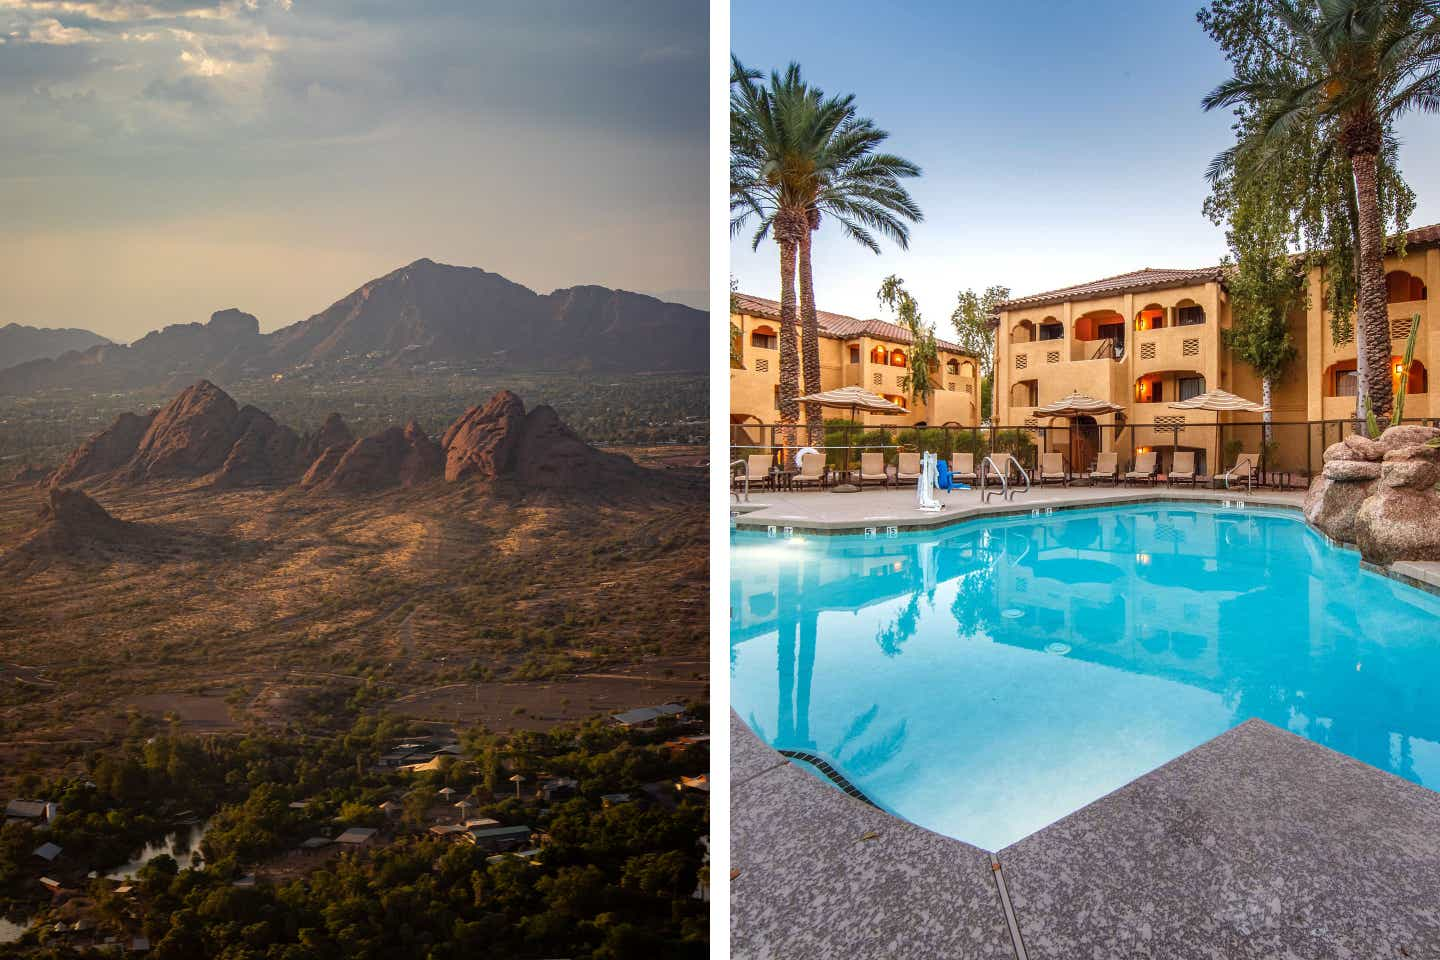 Left: A shot of the landscape featuring the peaks of camelback Mountain. Right: An exterior shot of our Scottsdale Resort pool.